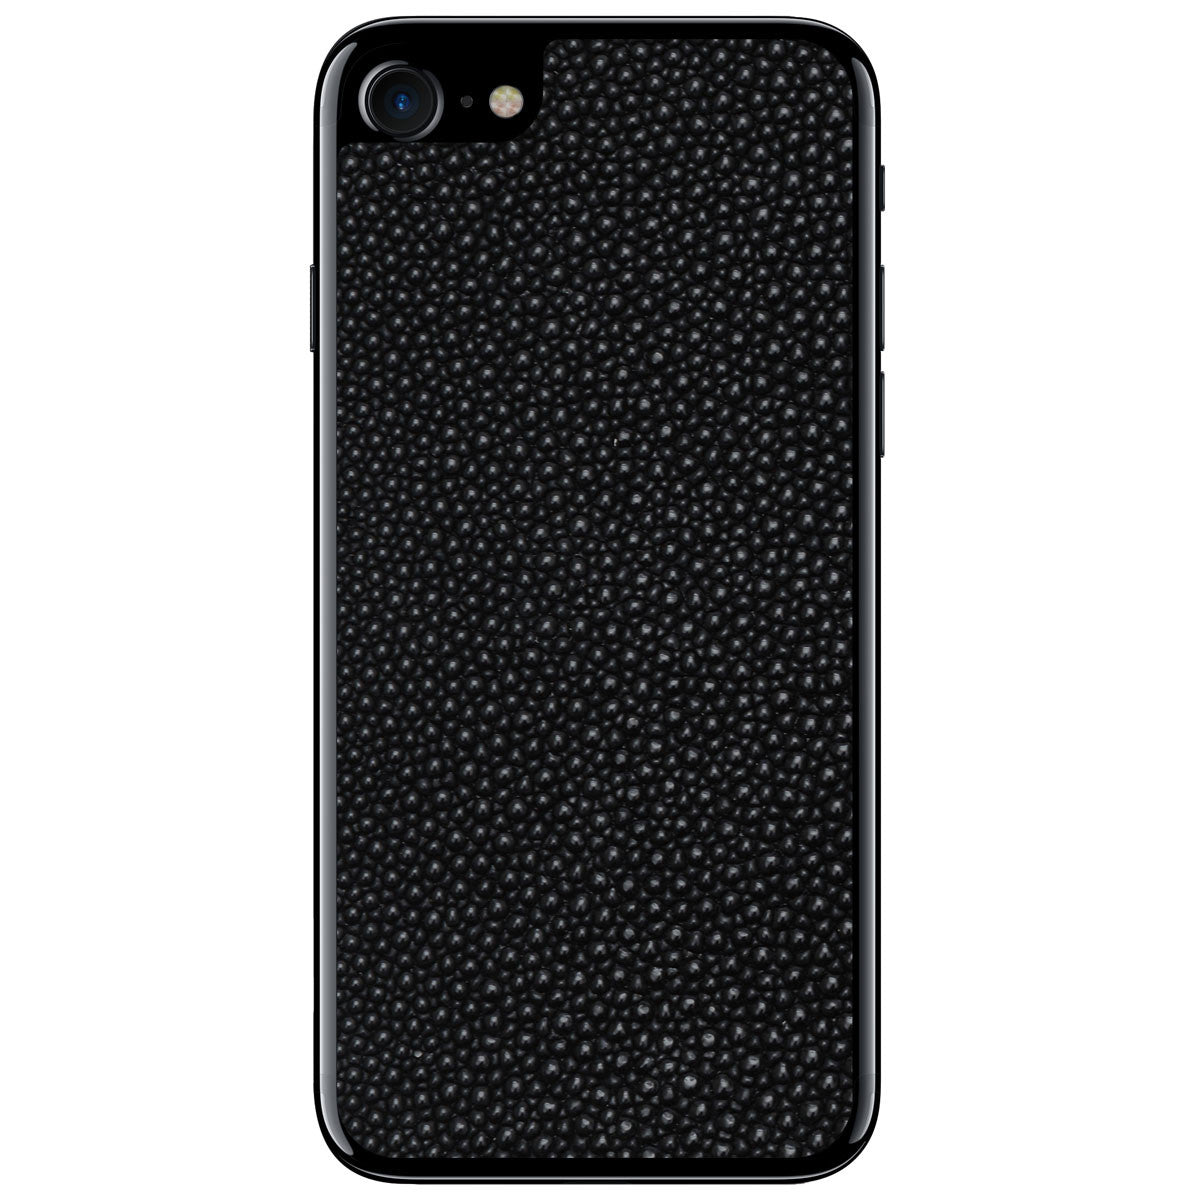 Stingray iPhone 8 Leather Skin